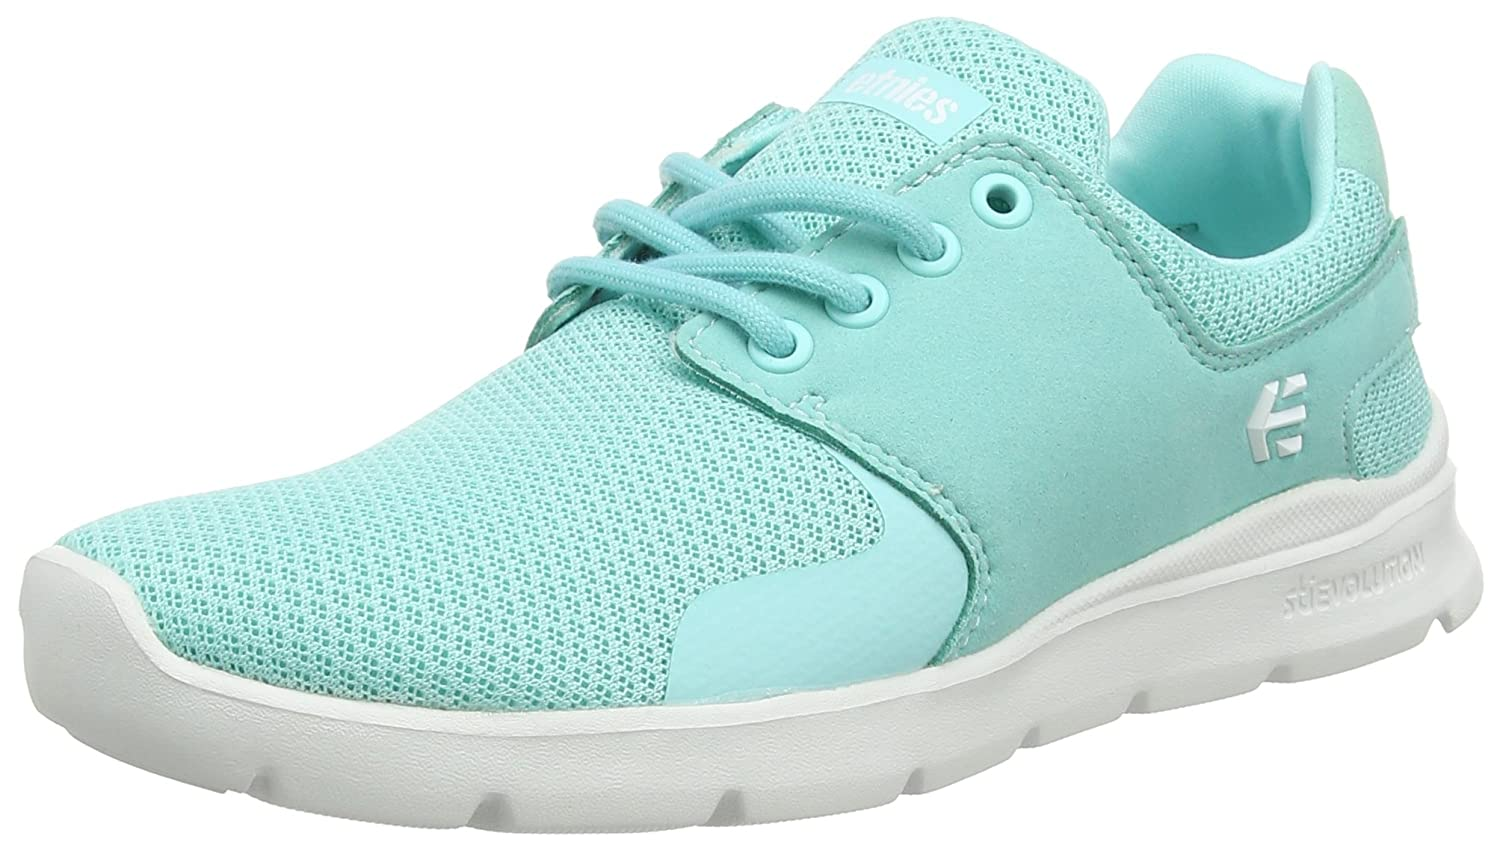 Etnies Womens Scout XT Sneaker B01MYBE9YO 6.5 B(M) US|Light Blue